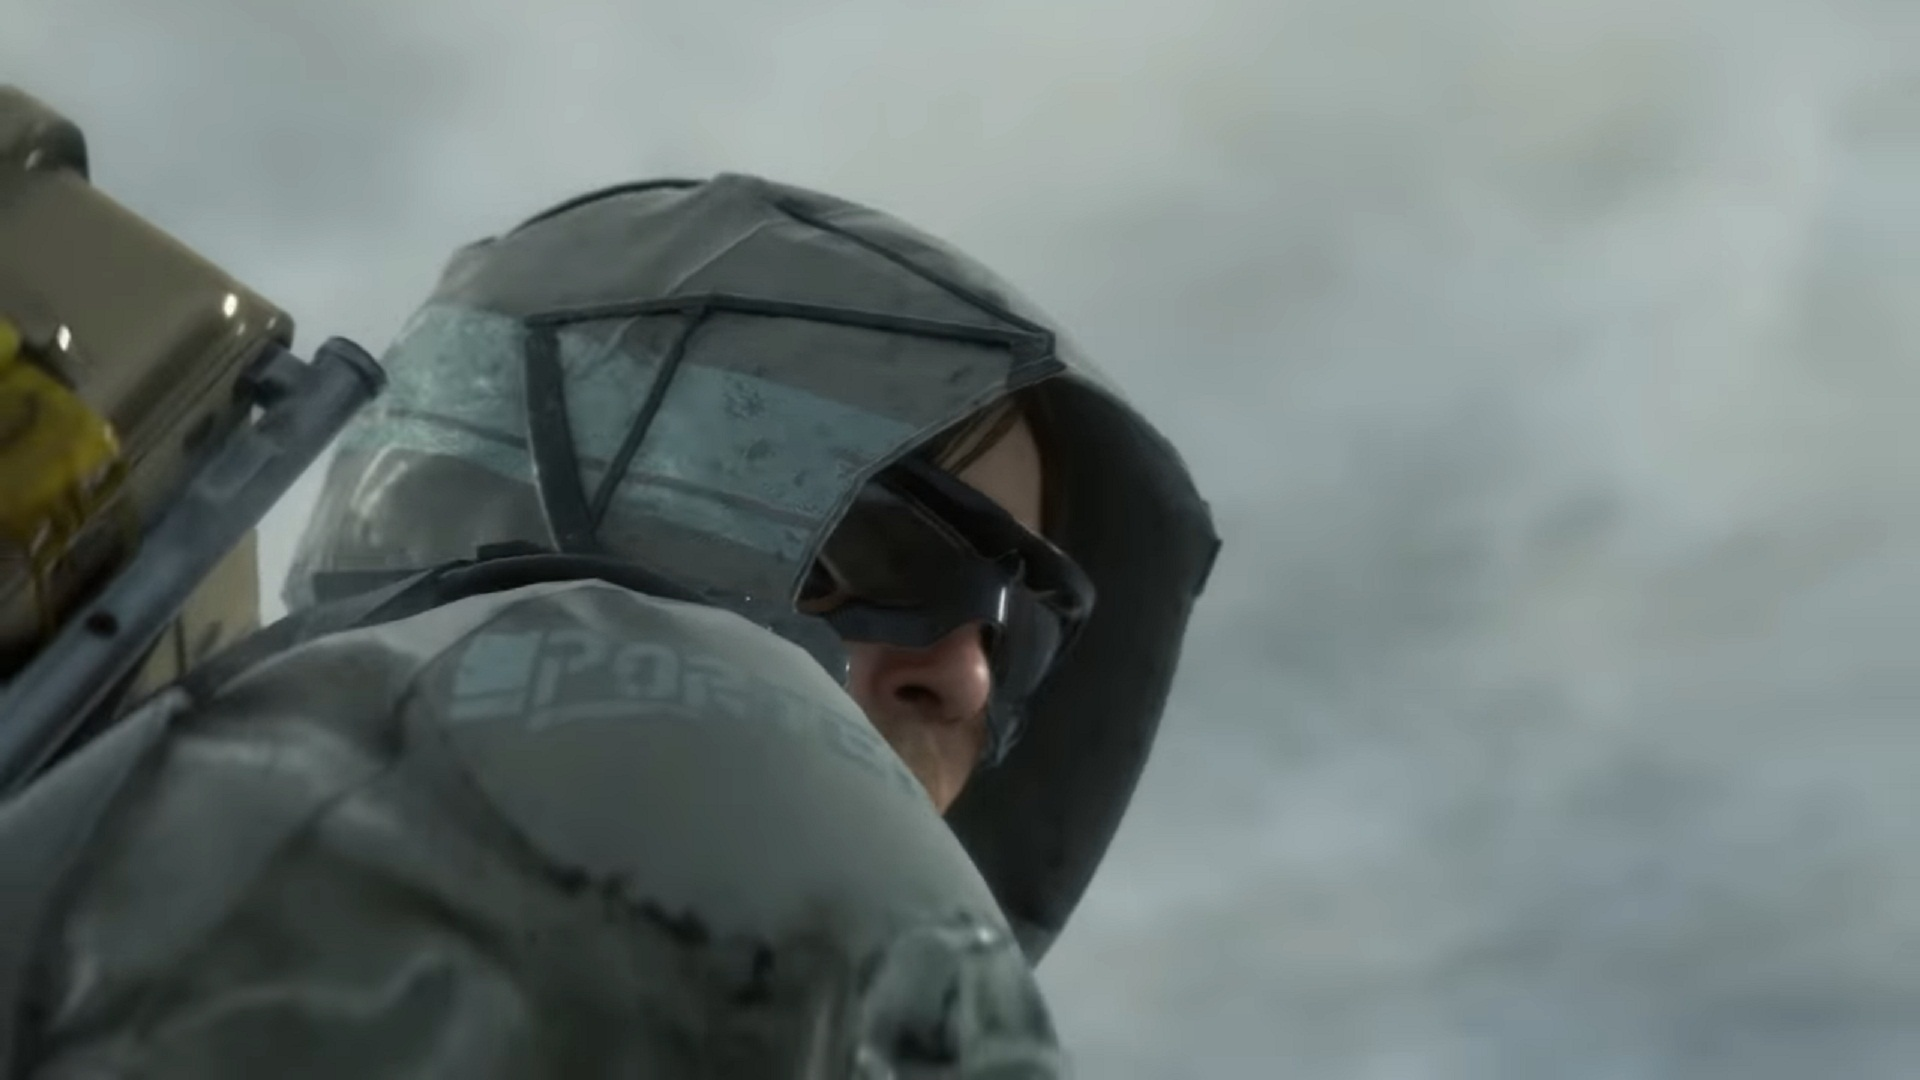 Leak – Death Stranding Will Feature NVIDIA's DLSS 2.0 In Its PC Version, As Spotted On PCMASTERRACE